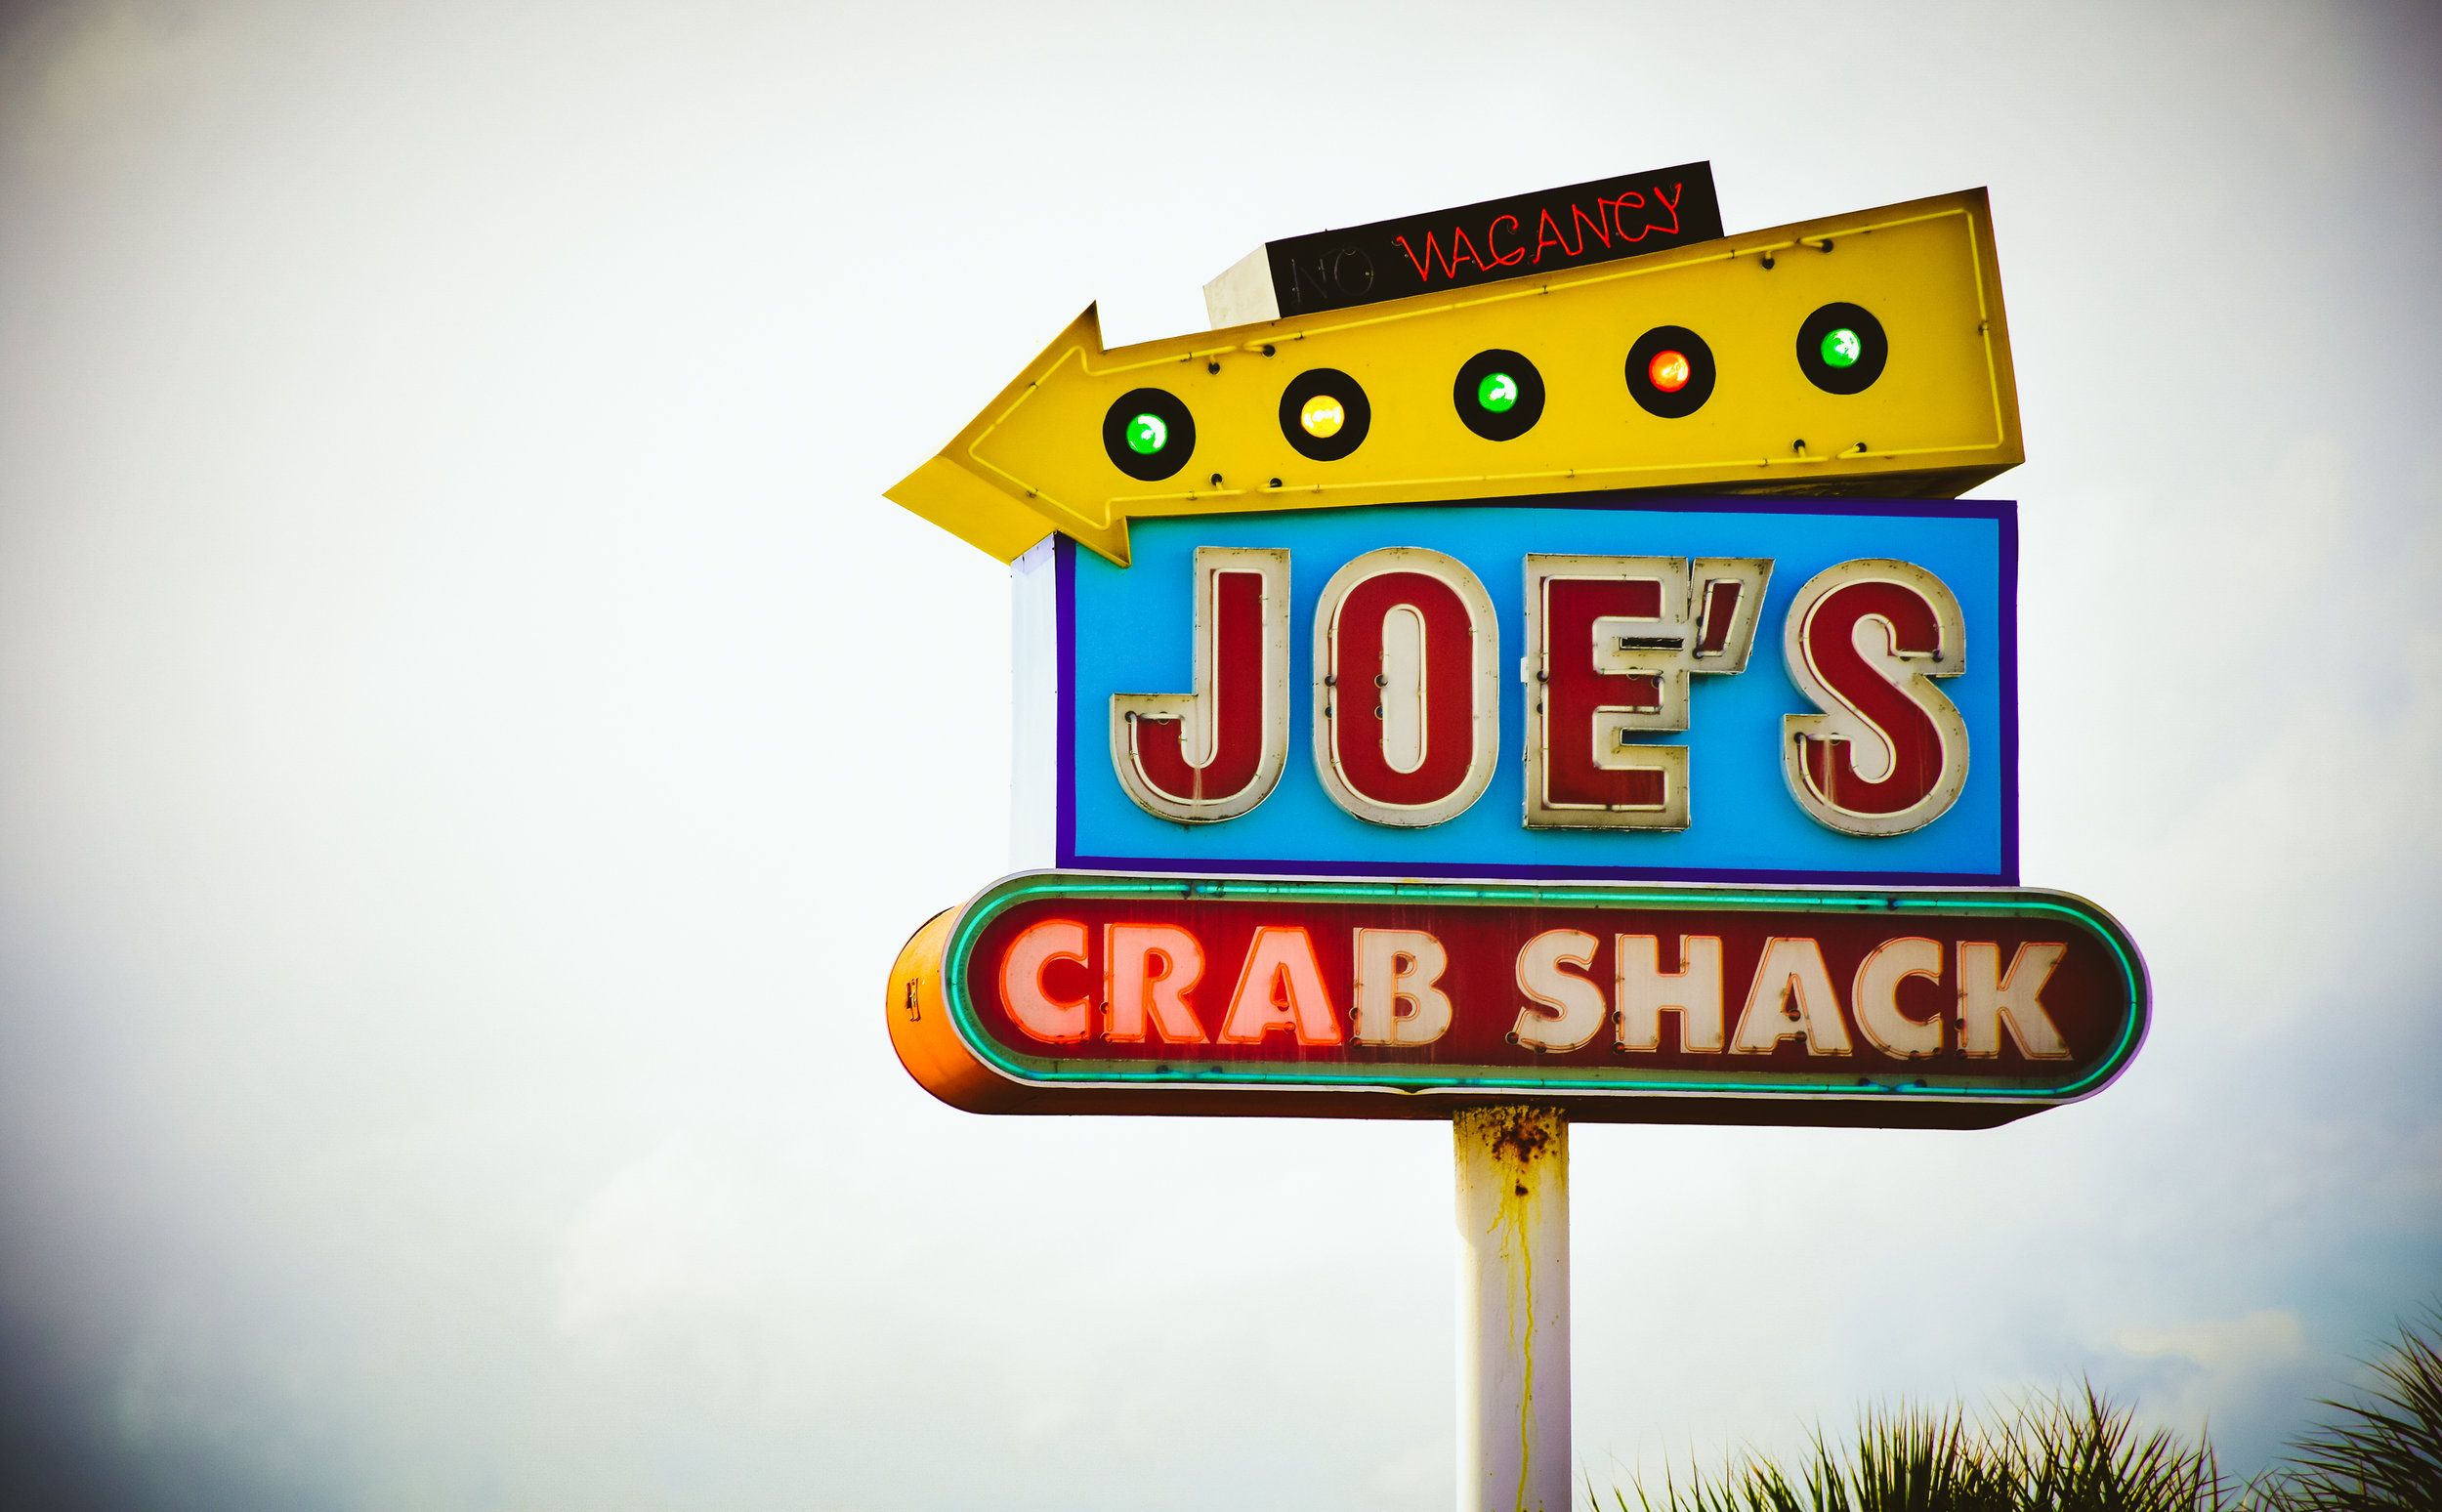 Joe's Crab Shack in Jacksonville was absolutely PACKED. We had hoped for some fresh crab whilst down south and on the ocean but it was not to be.